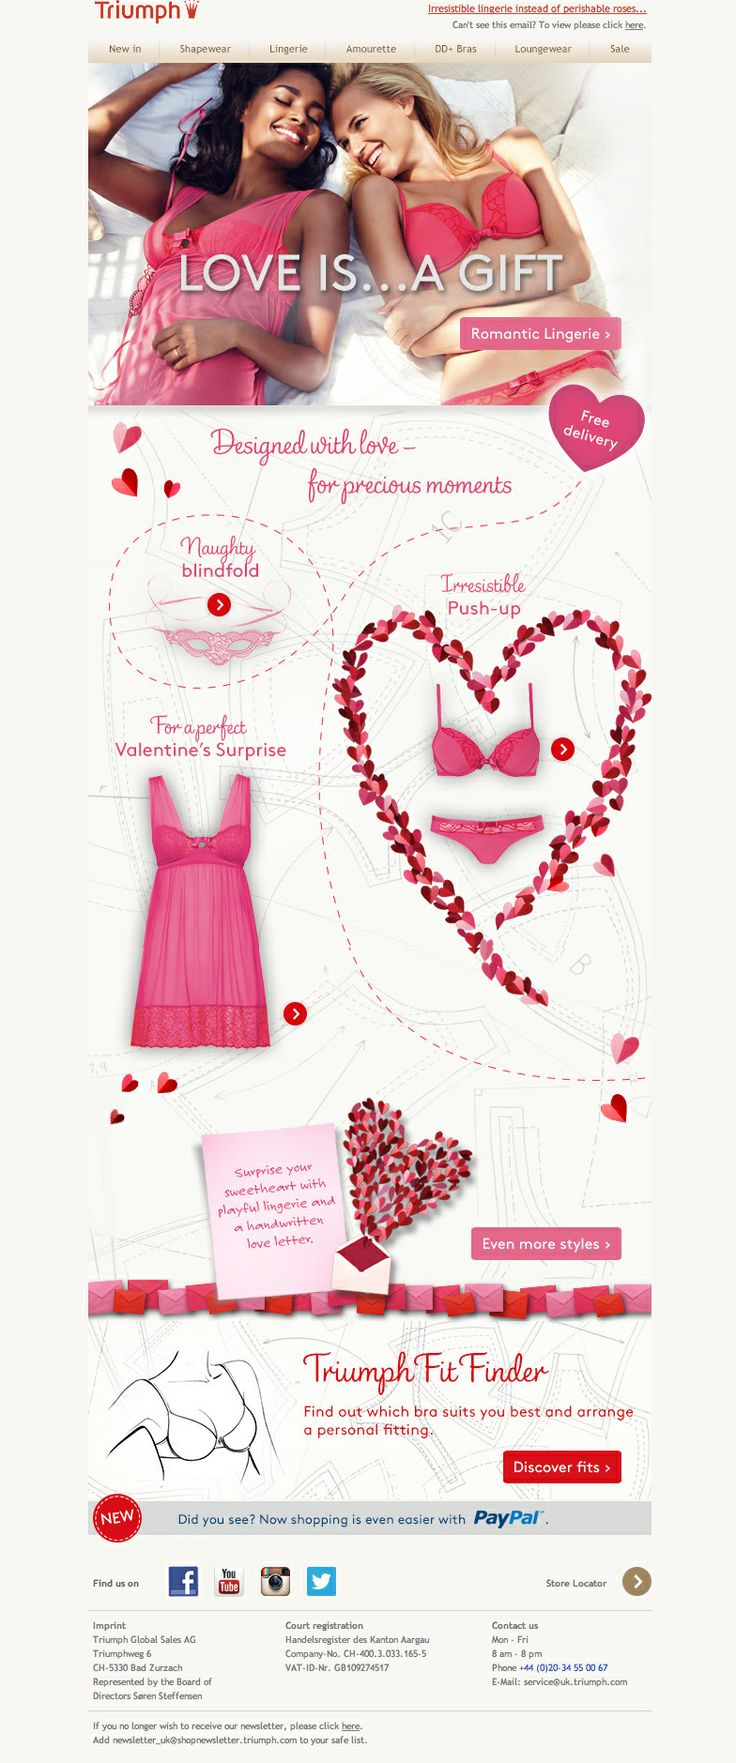 #newsletter Triumph 01.2014  ♥ Love greetings for Valentine's Day ♥